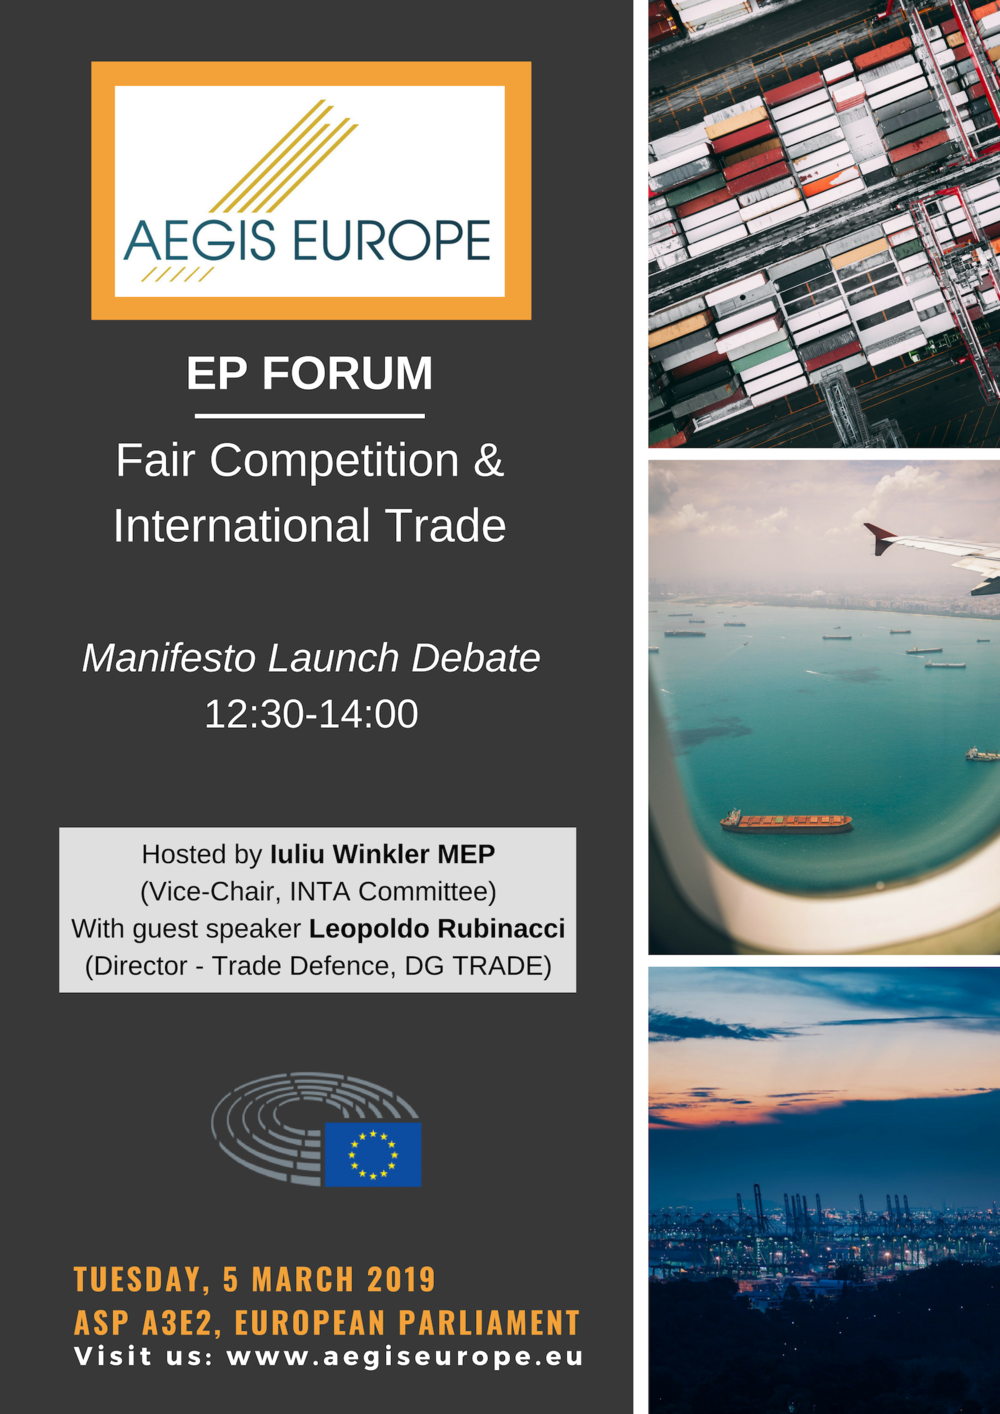 AEGIS EUROPE EP Forum - Poster 1.png